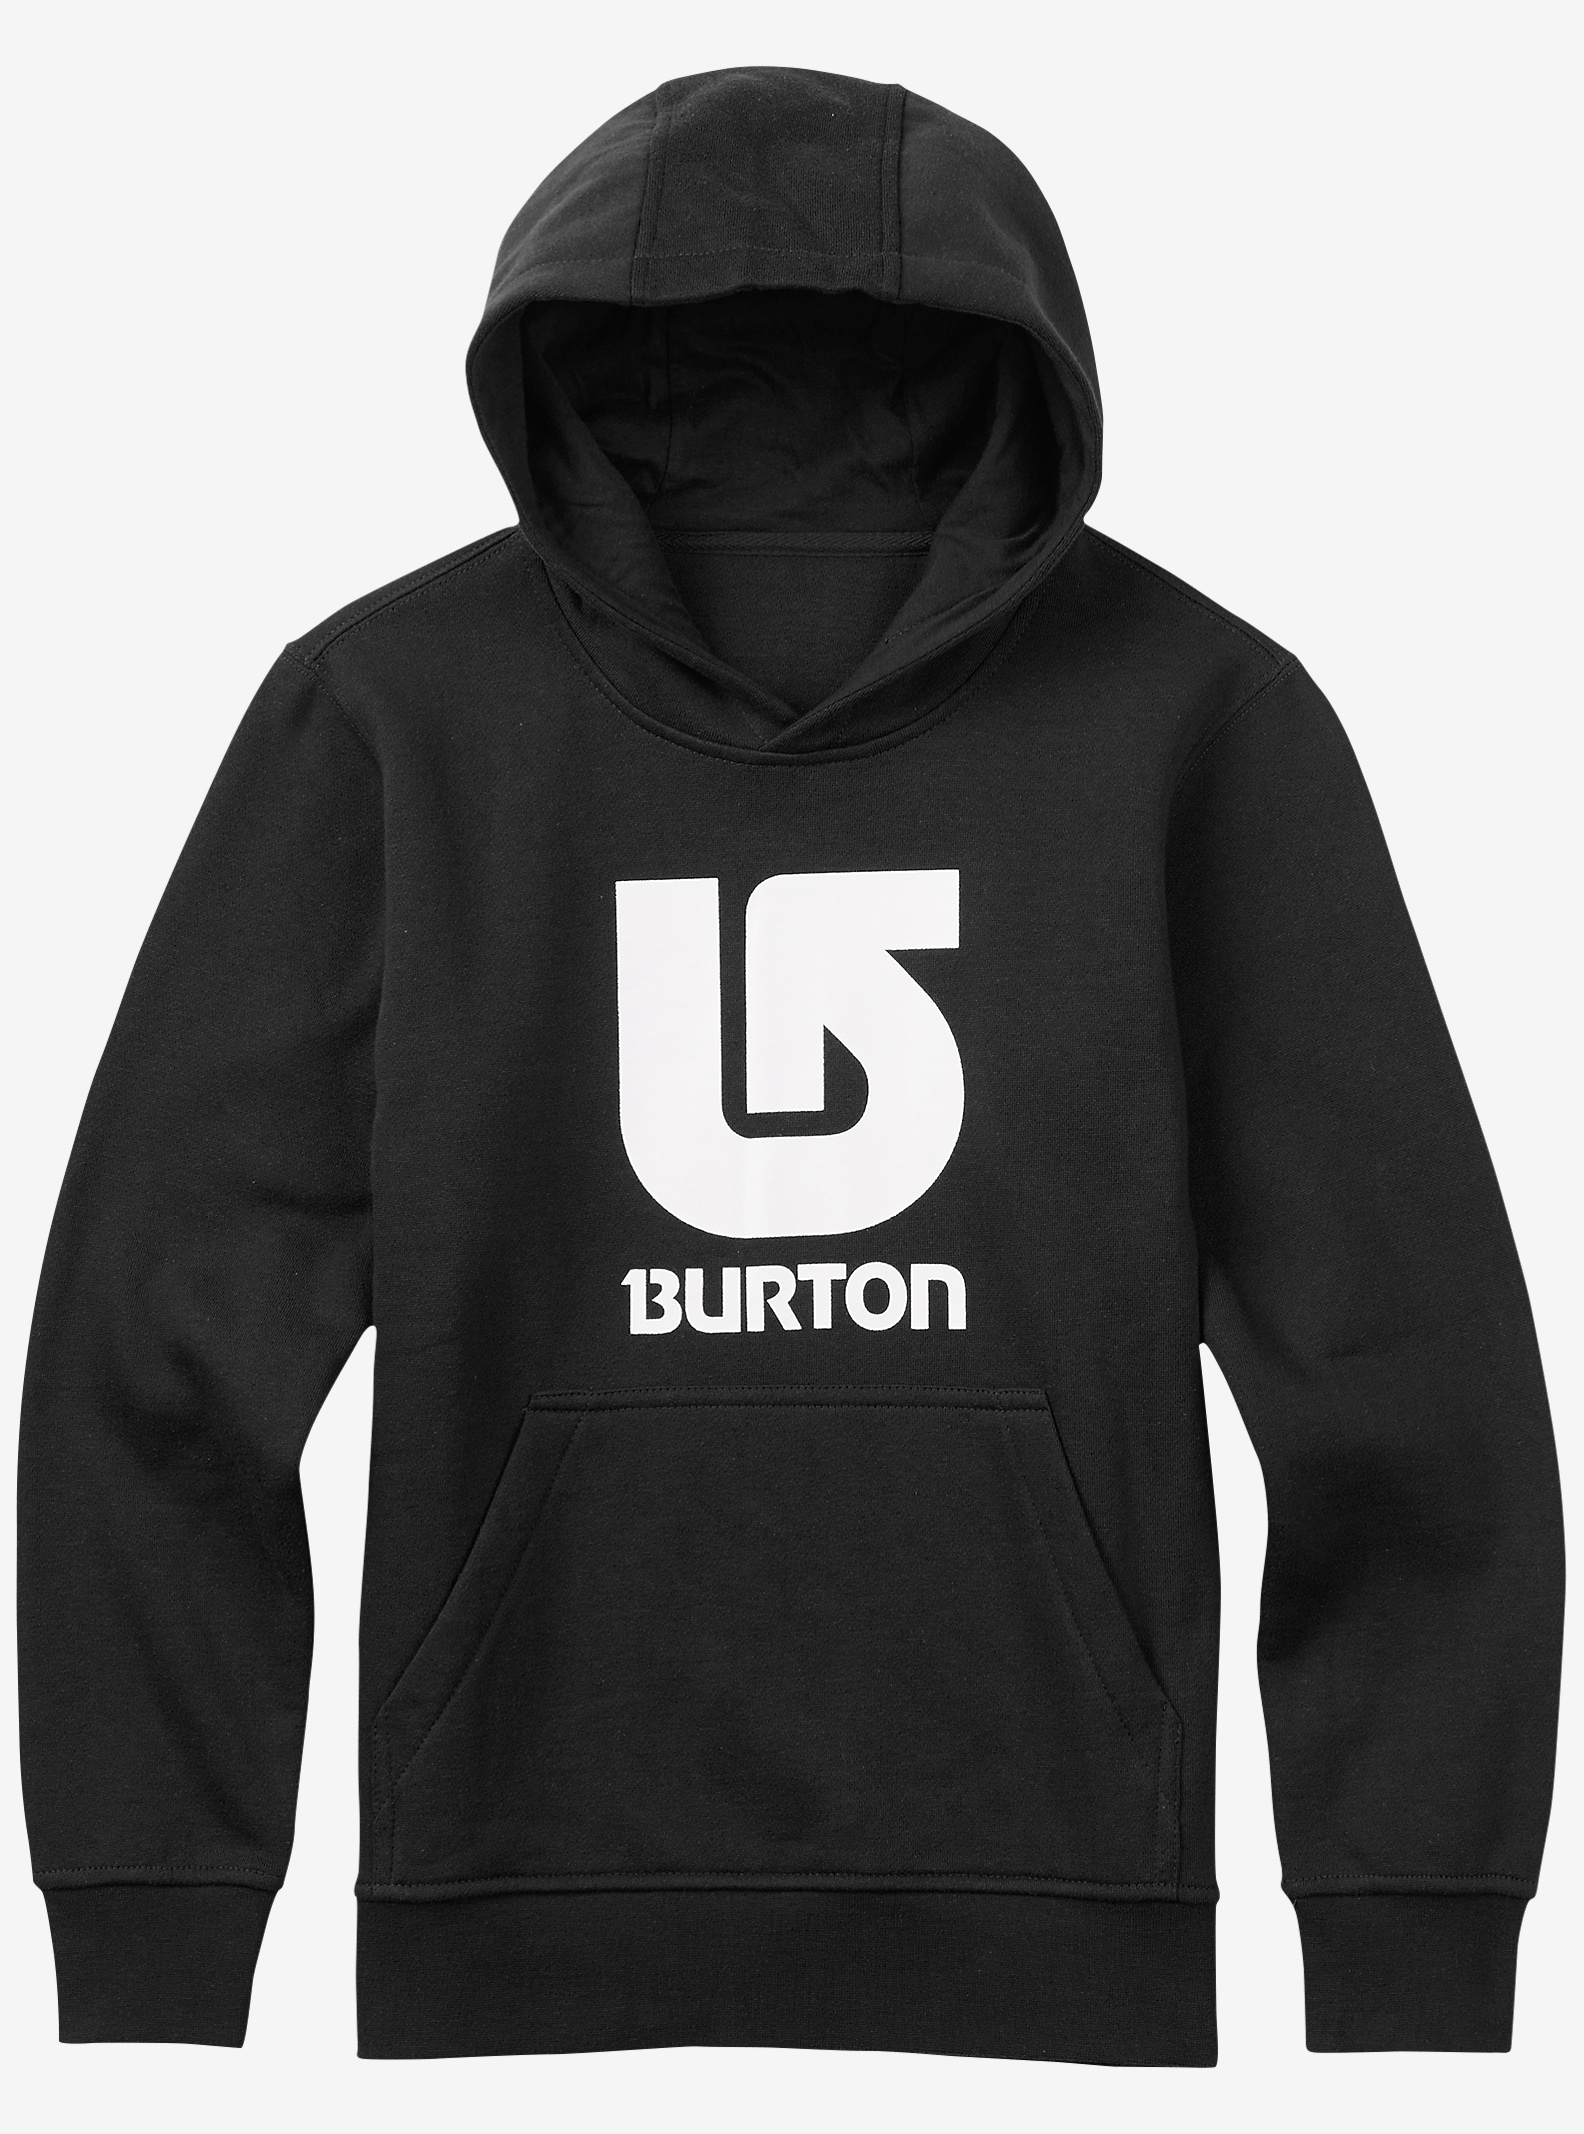 Burton Logo Vertical Pullover Hoodie shown in True Black